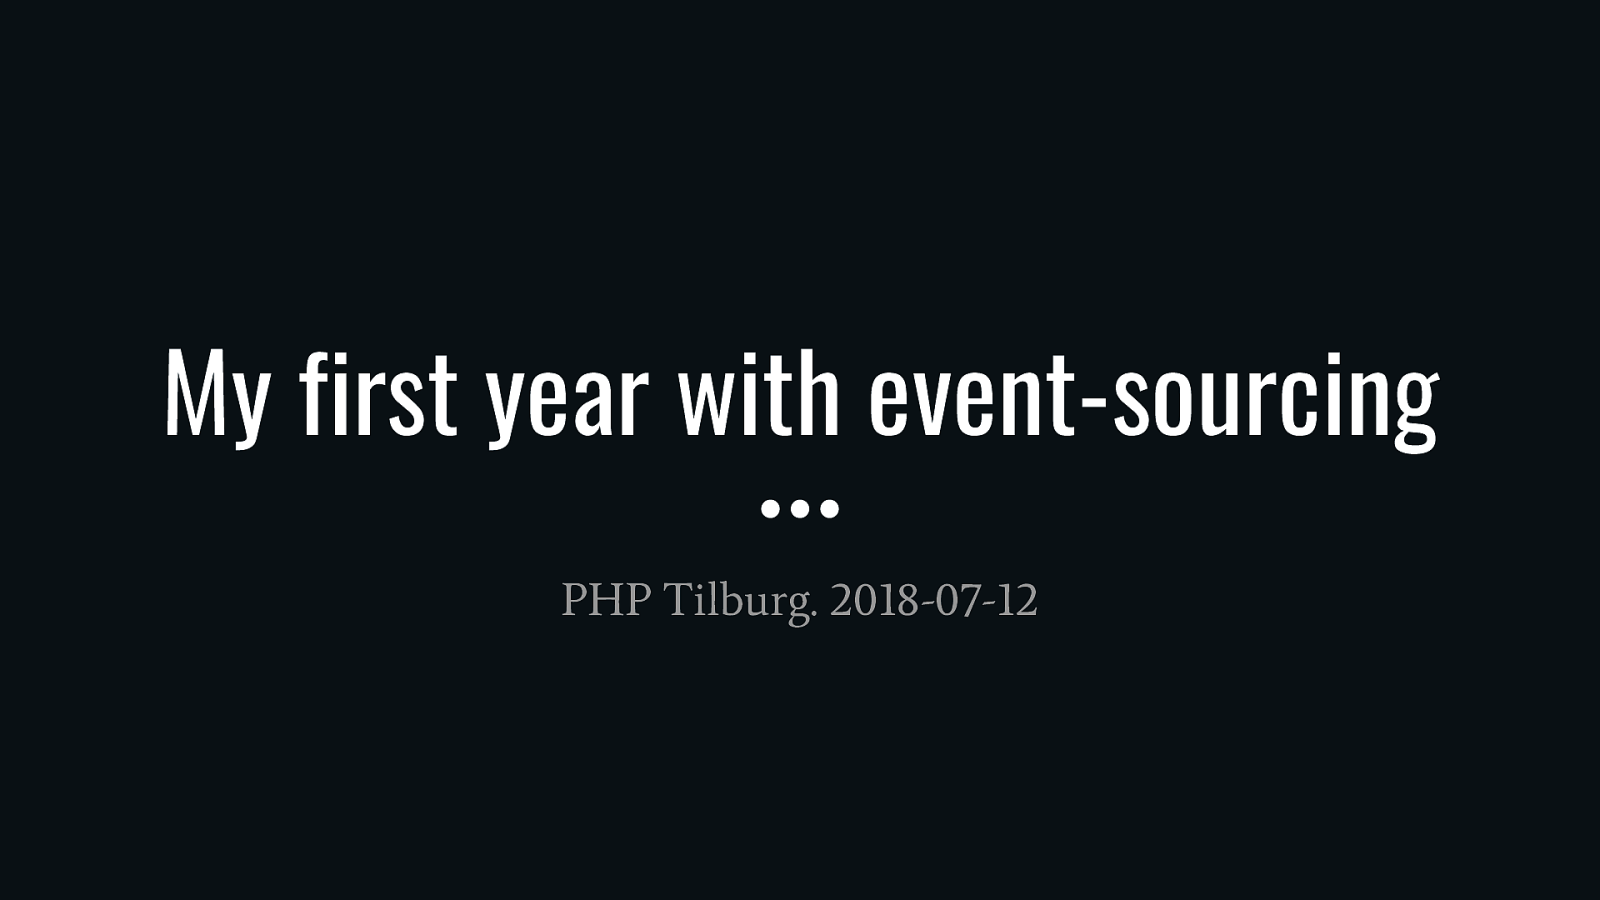 My first year with Event-sourcing